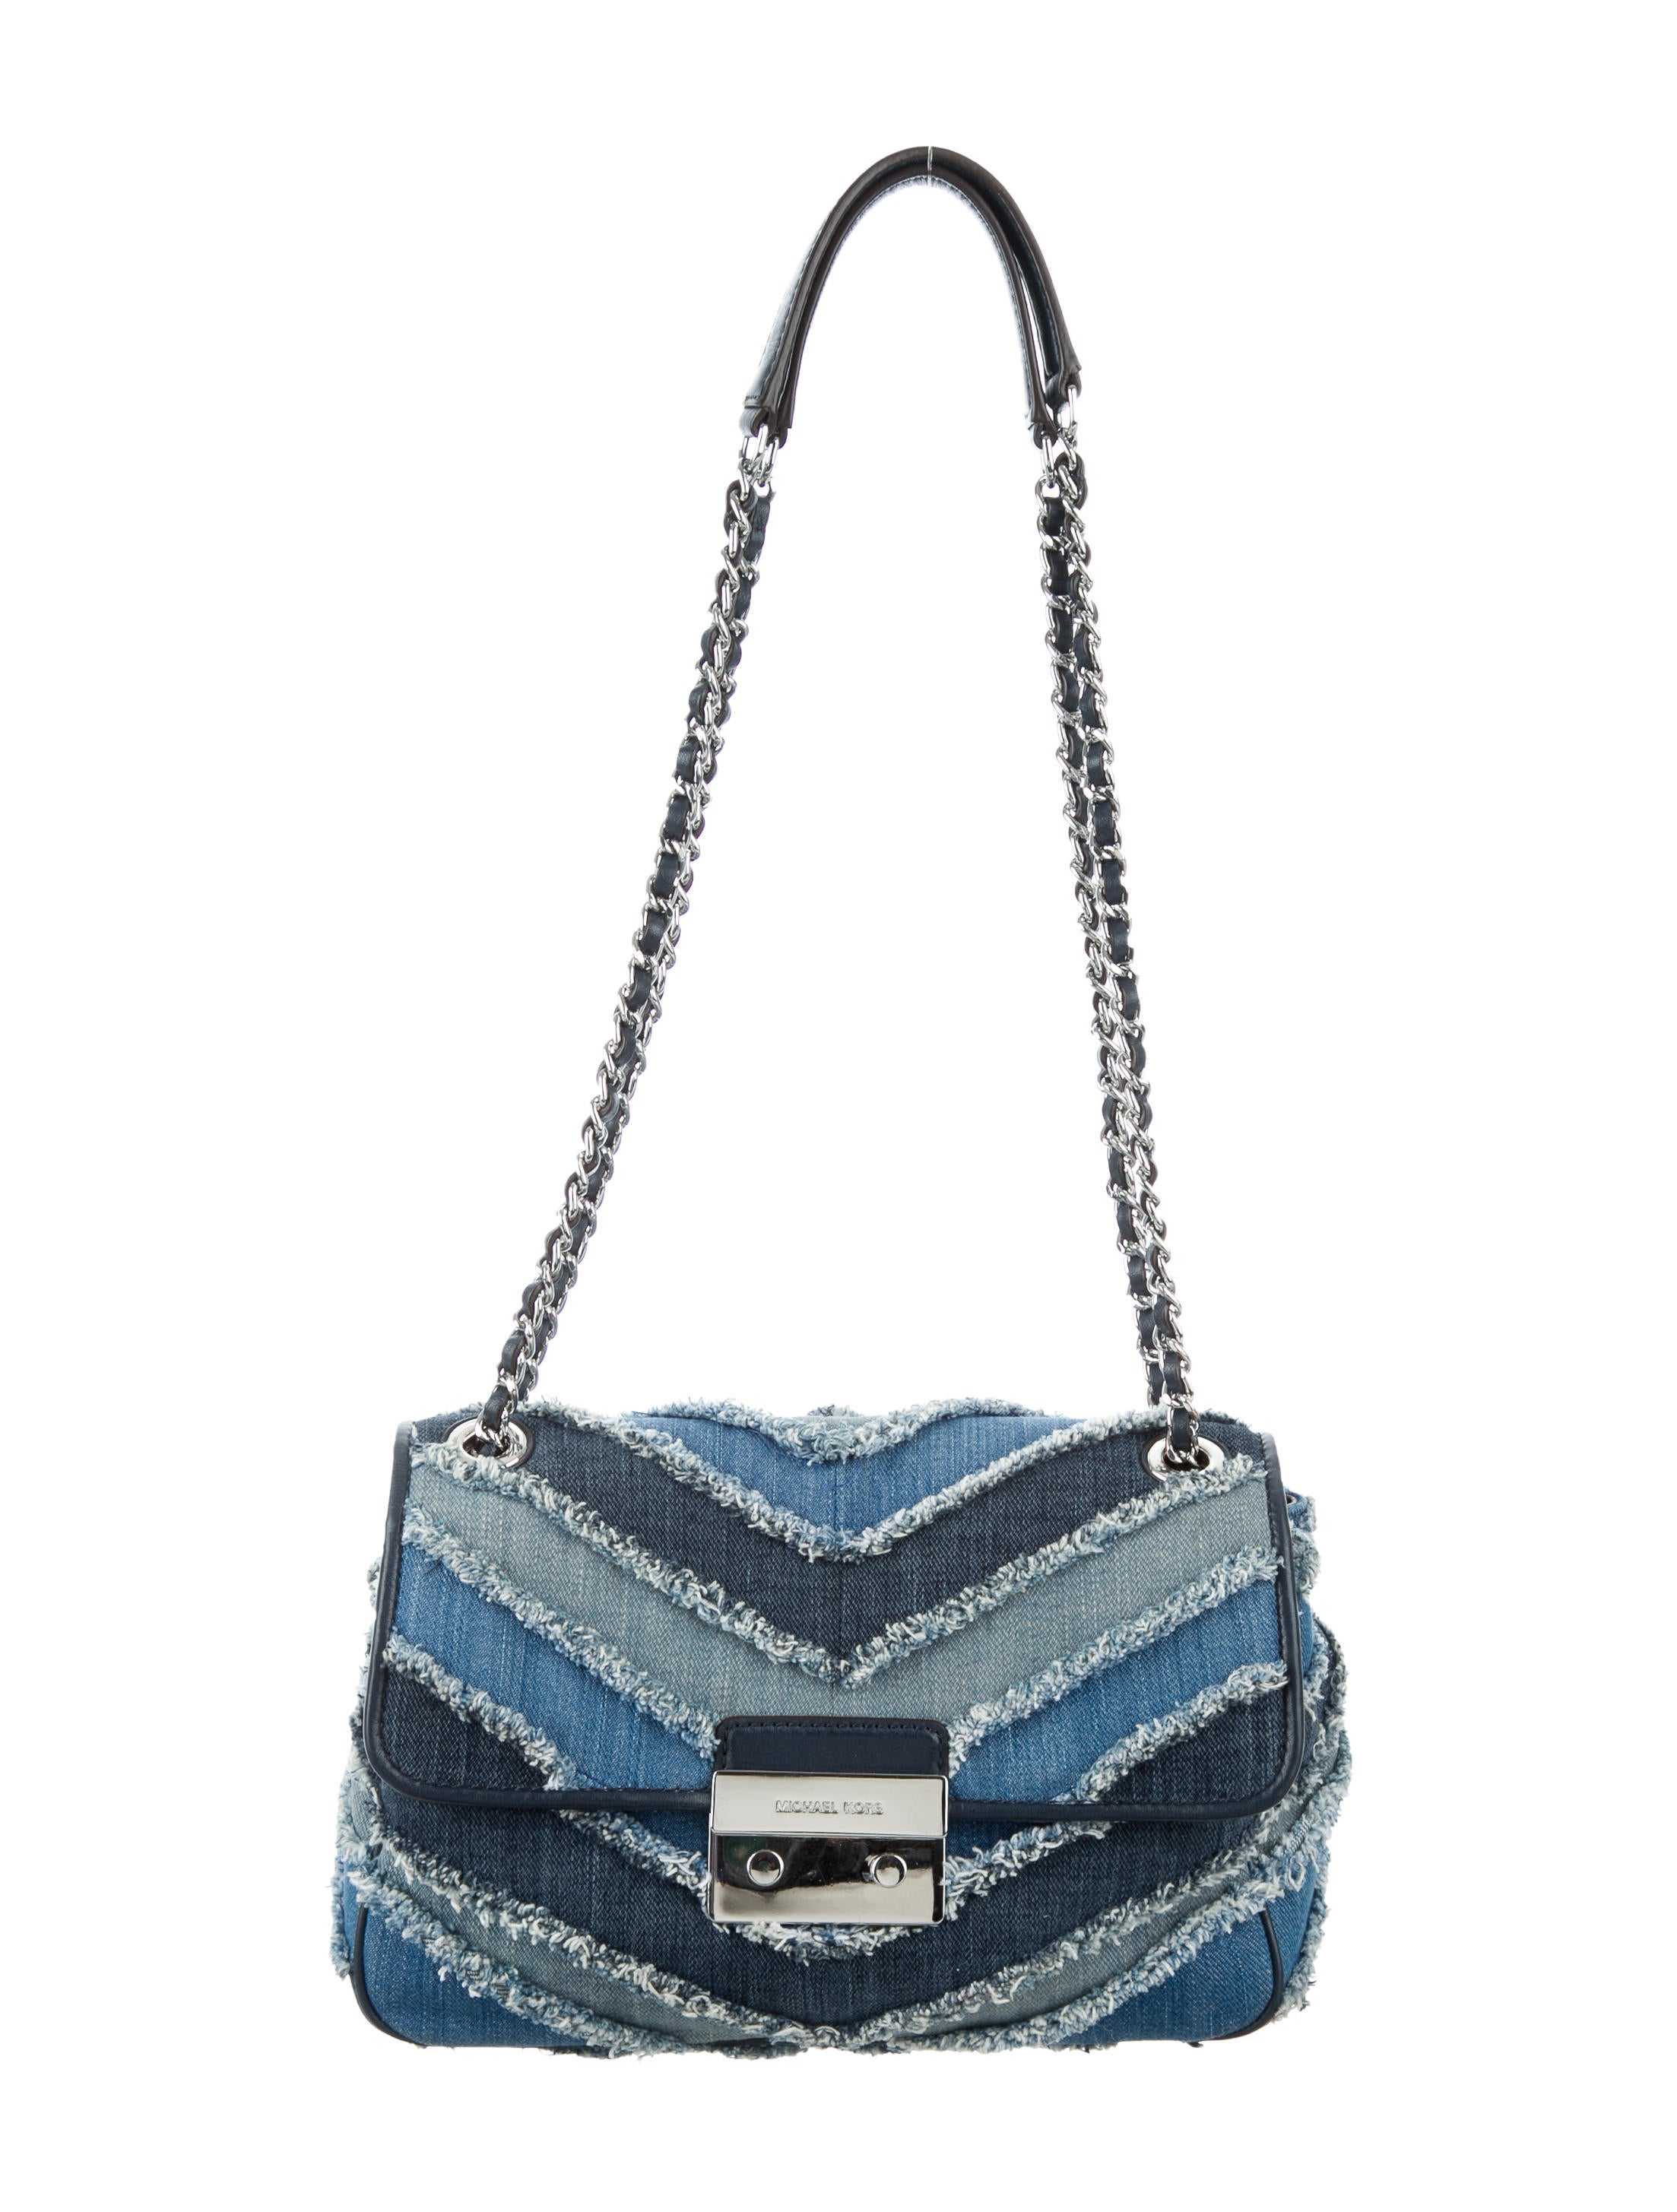 858e5c263120 Michael Michael Kors Small Sloan Chevron Denim Bag - Handbags ...